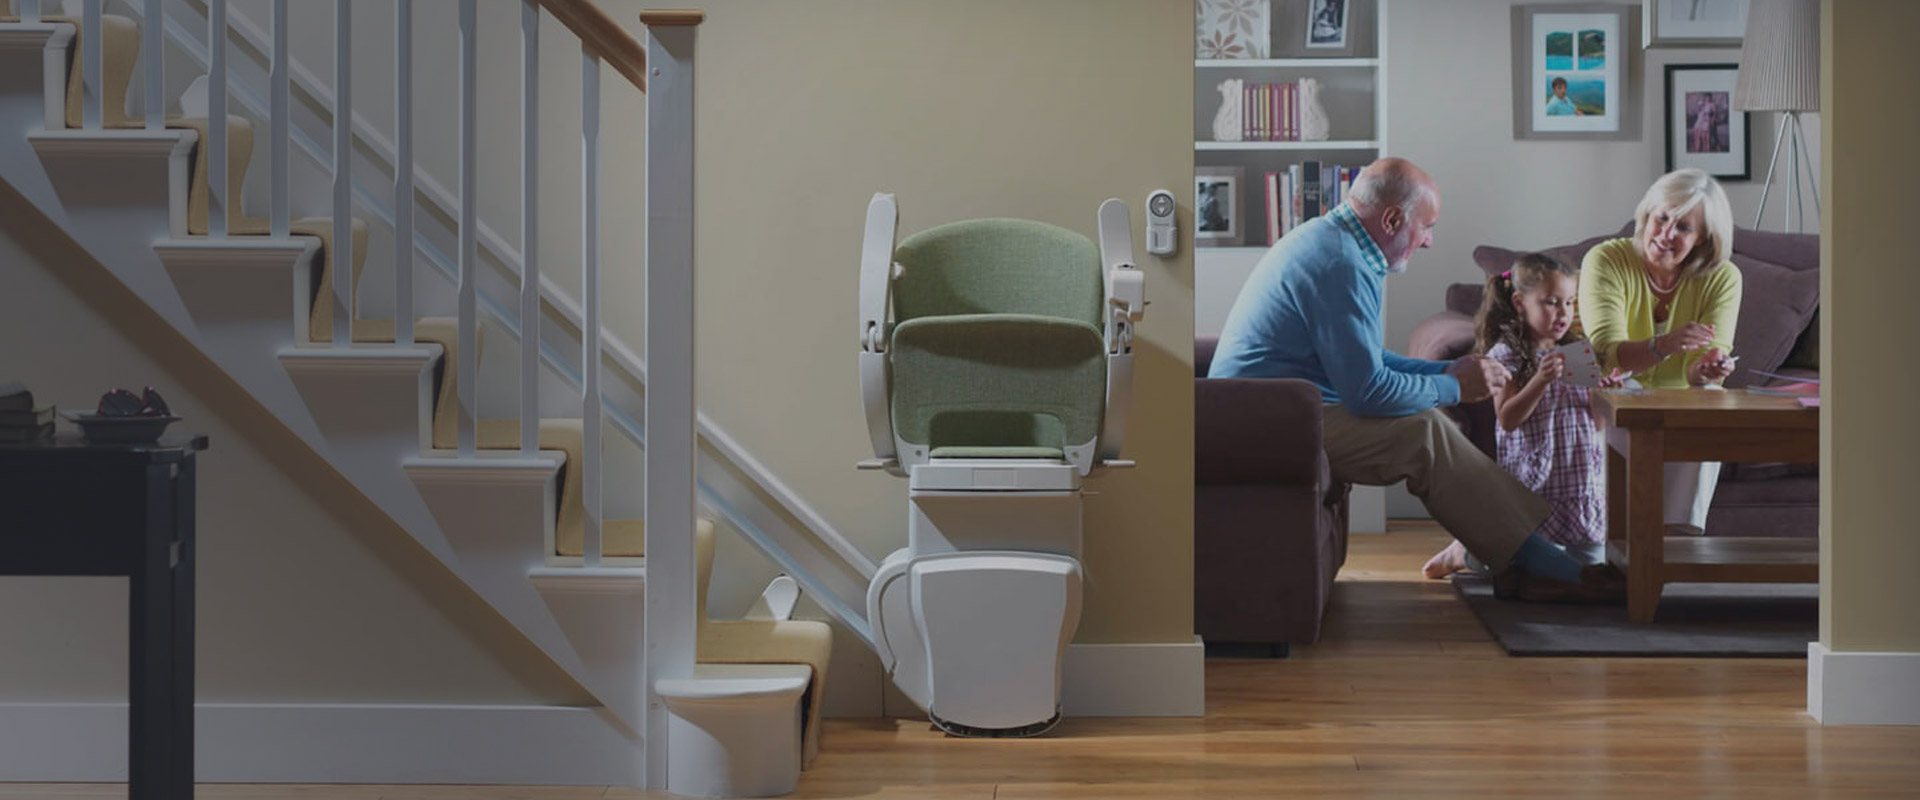 stock image of man, woman, child and stairlift